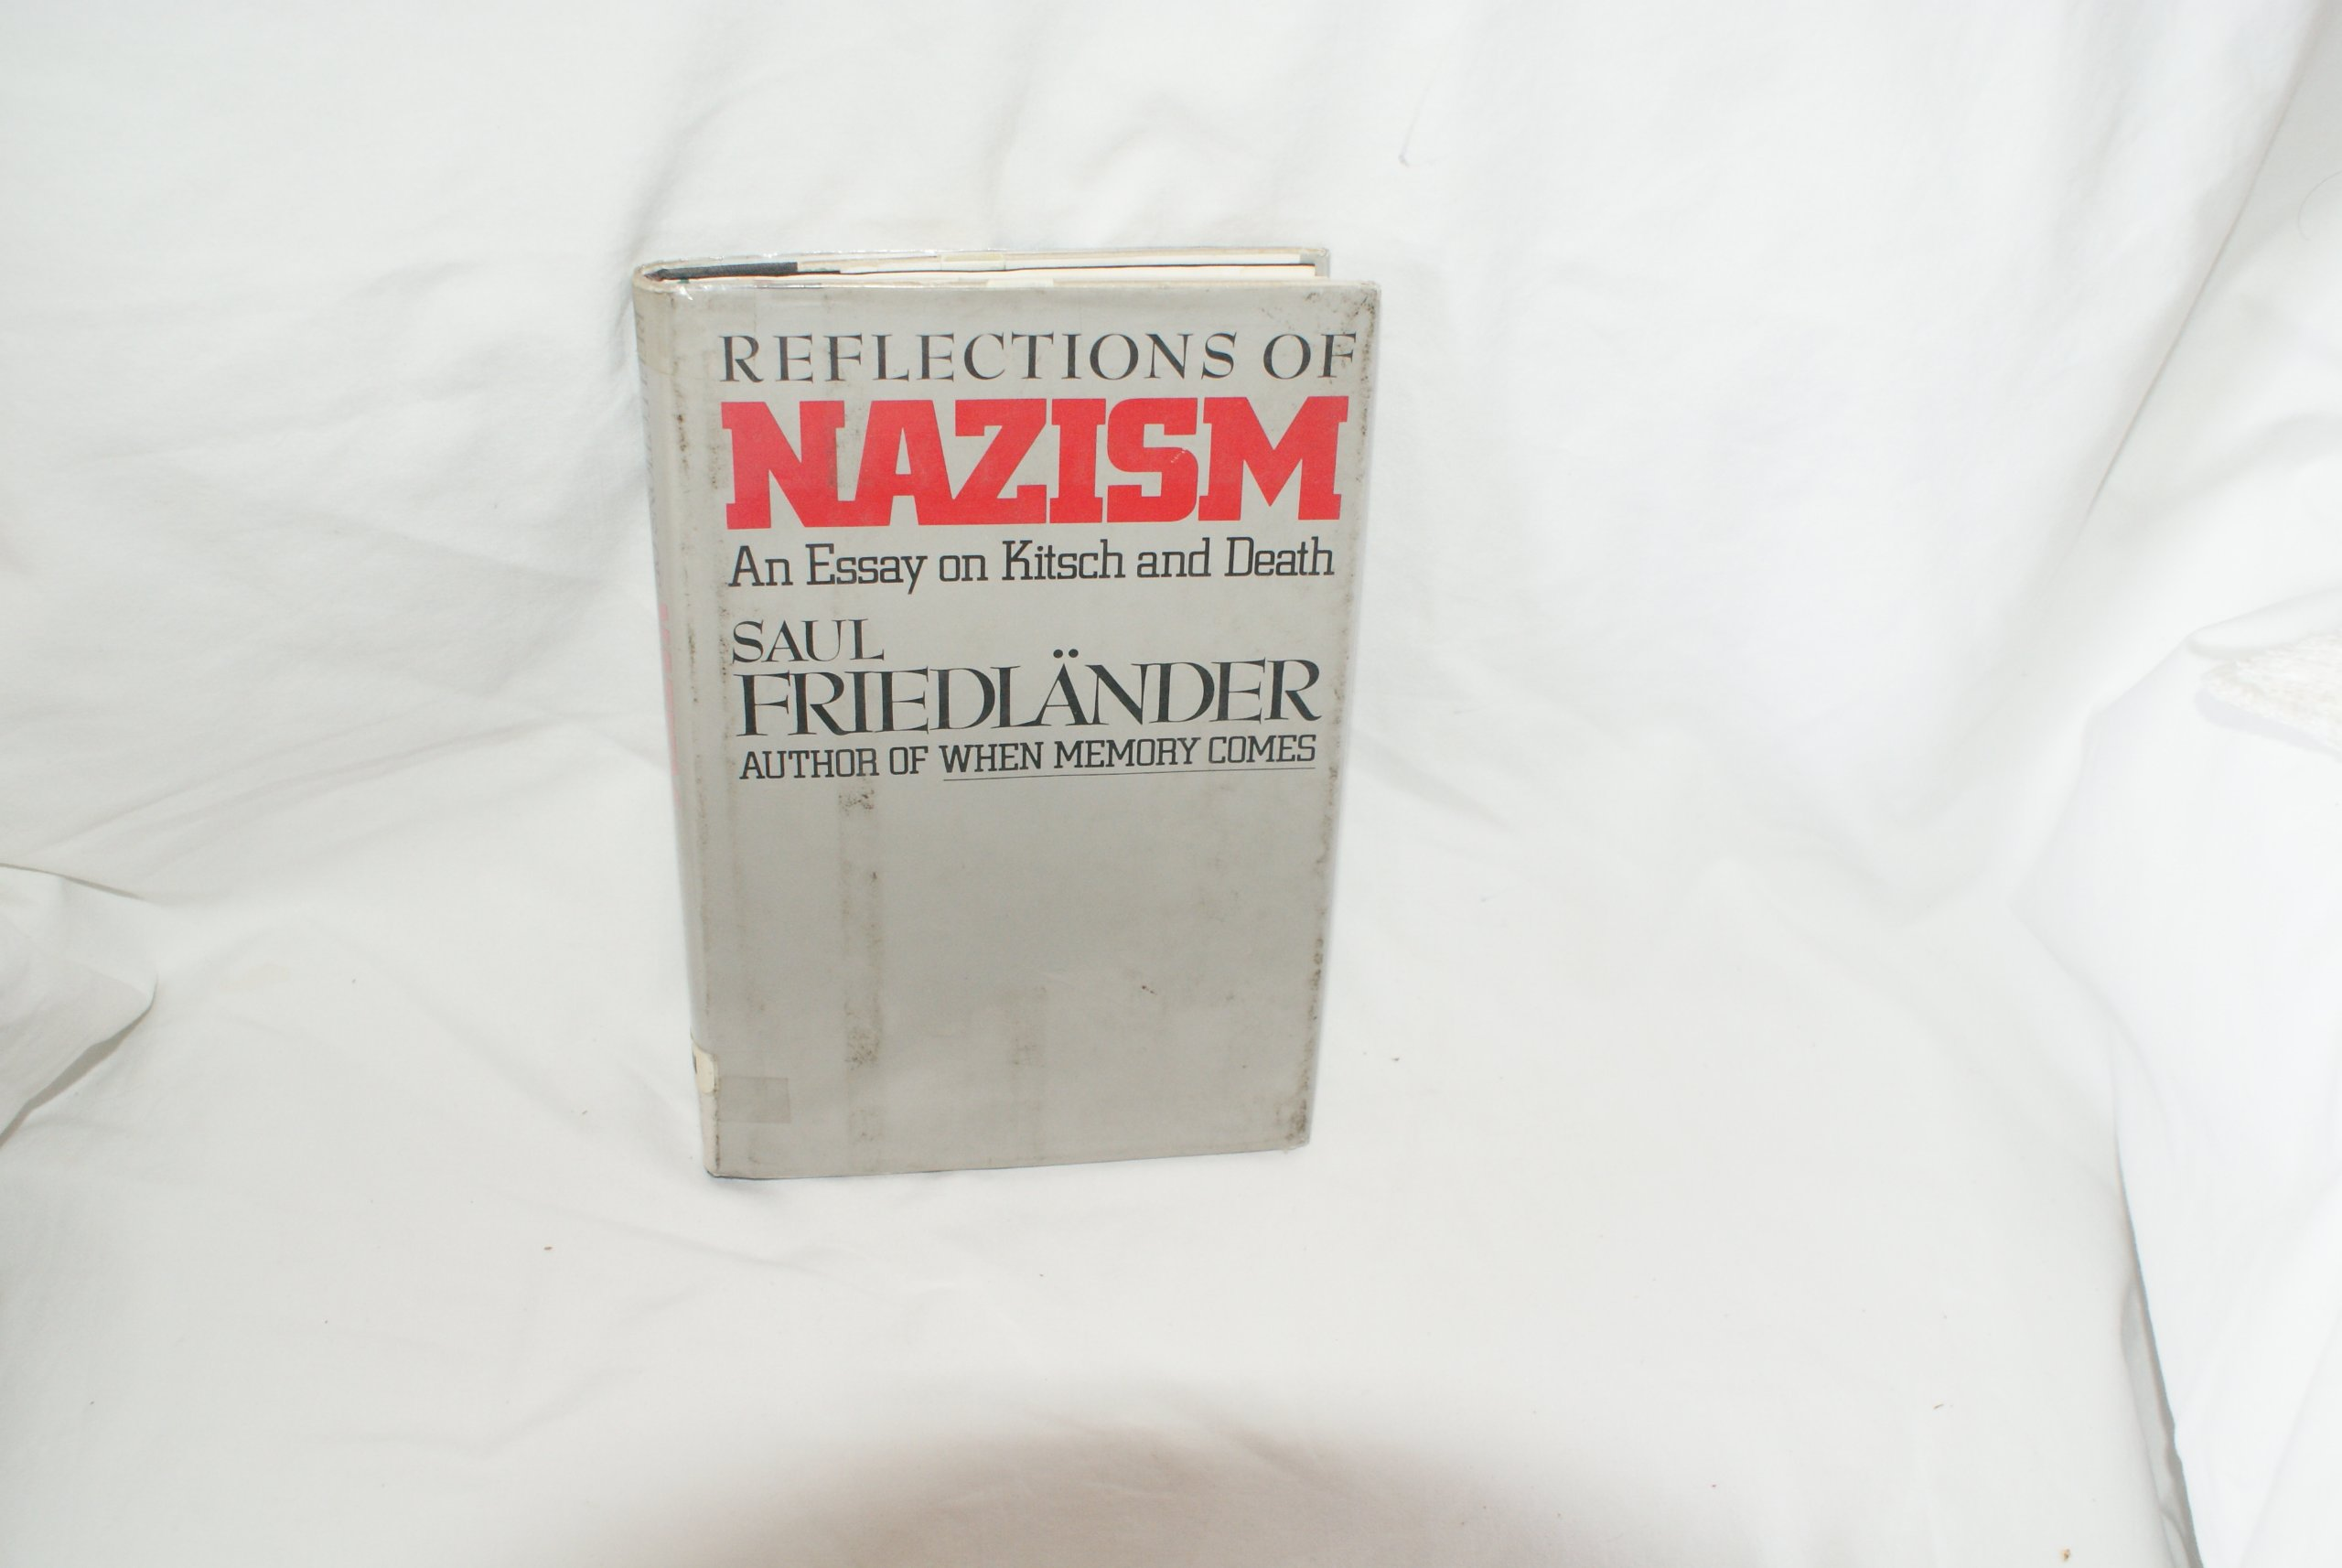 reflections of nazism an essay on kitsch and death saul  reflections of nazism an essay on kitsch and death saul friedlander 9780060150976 com books